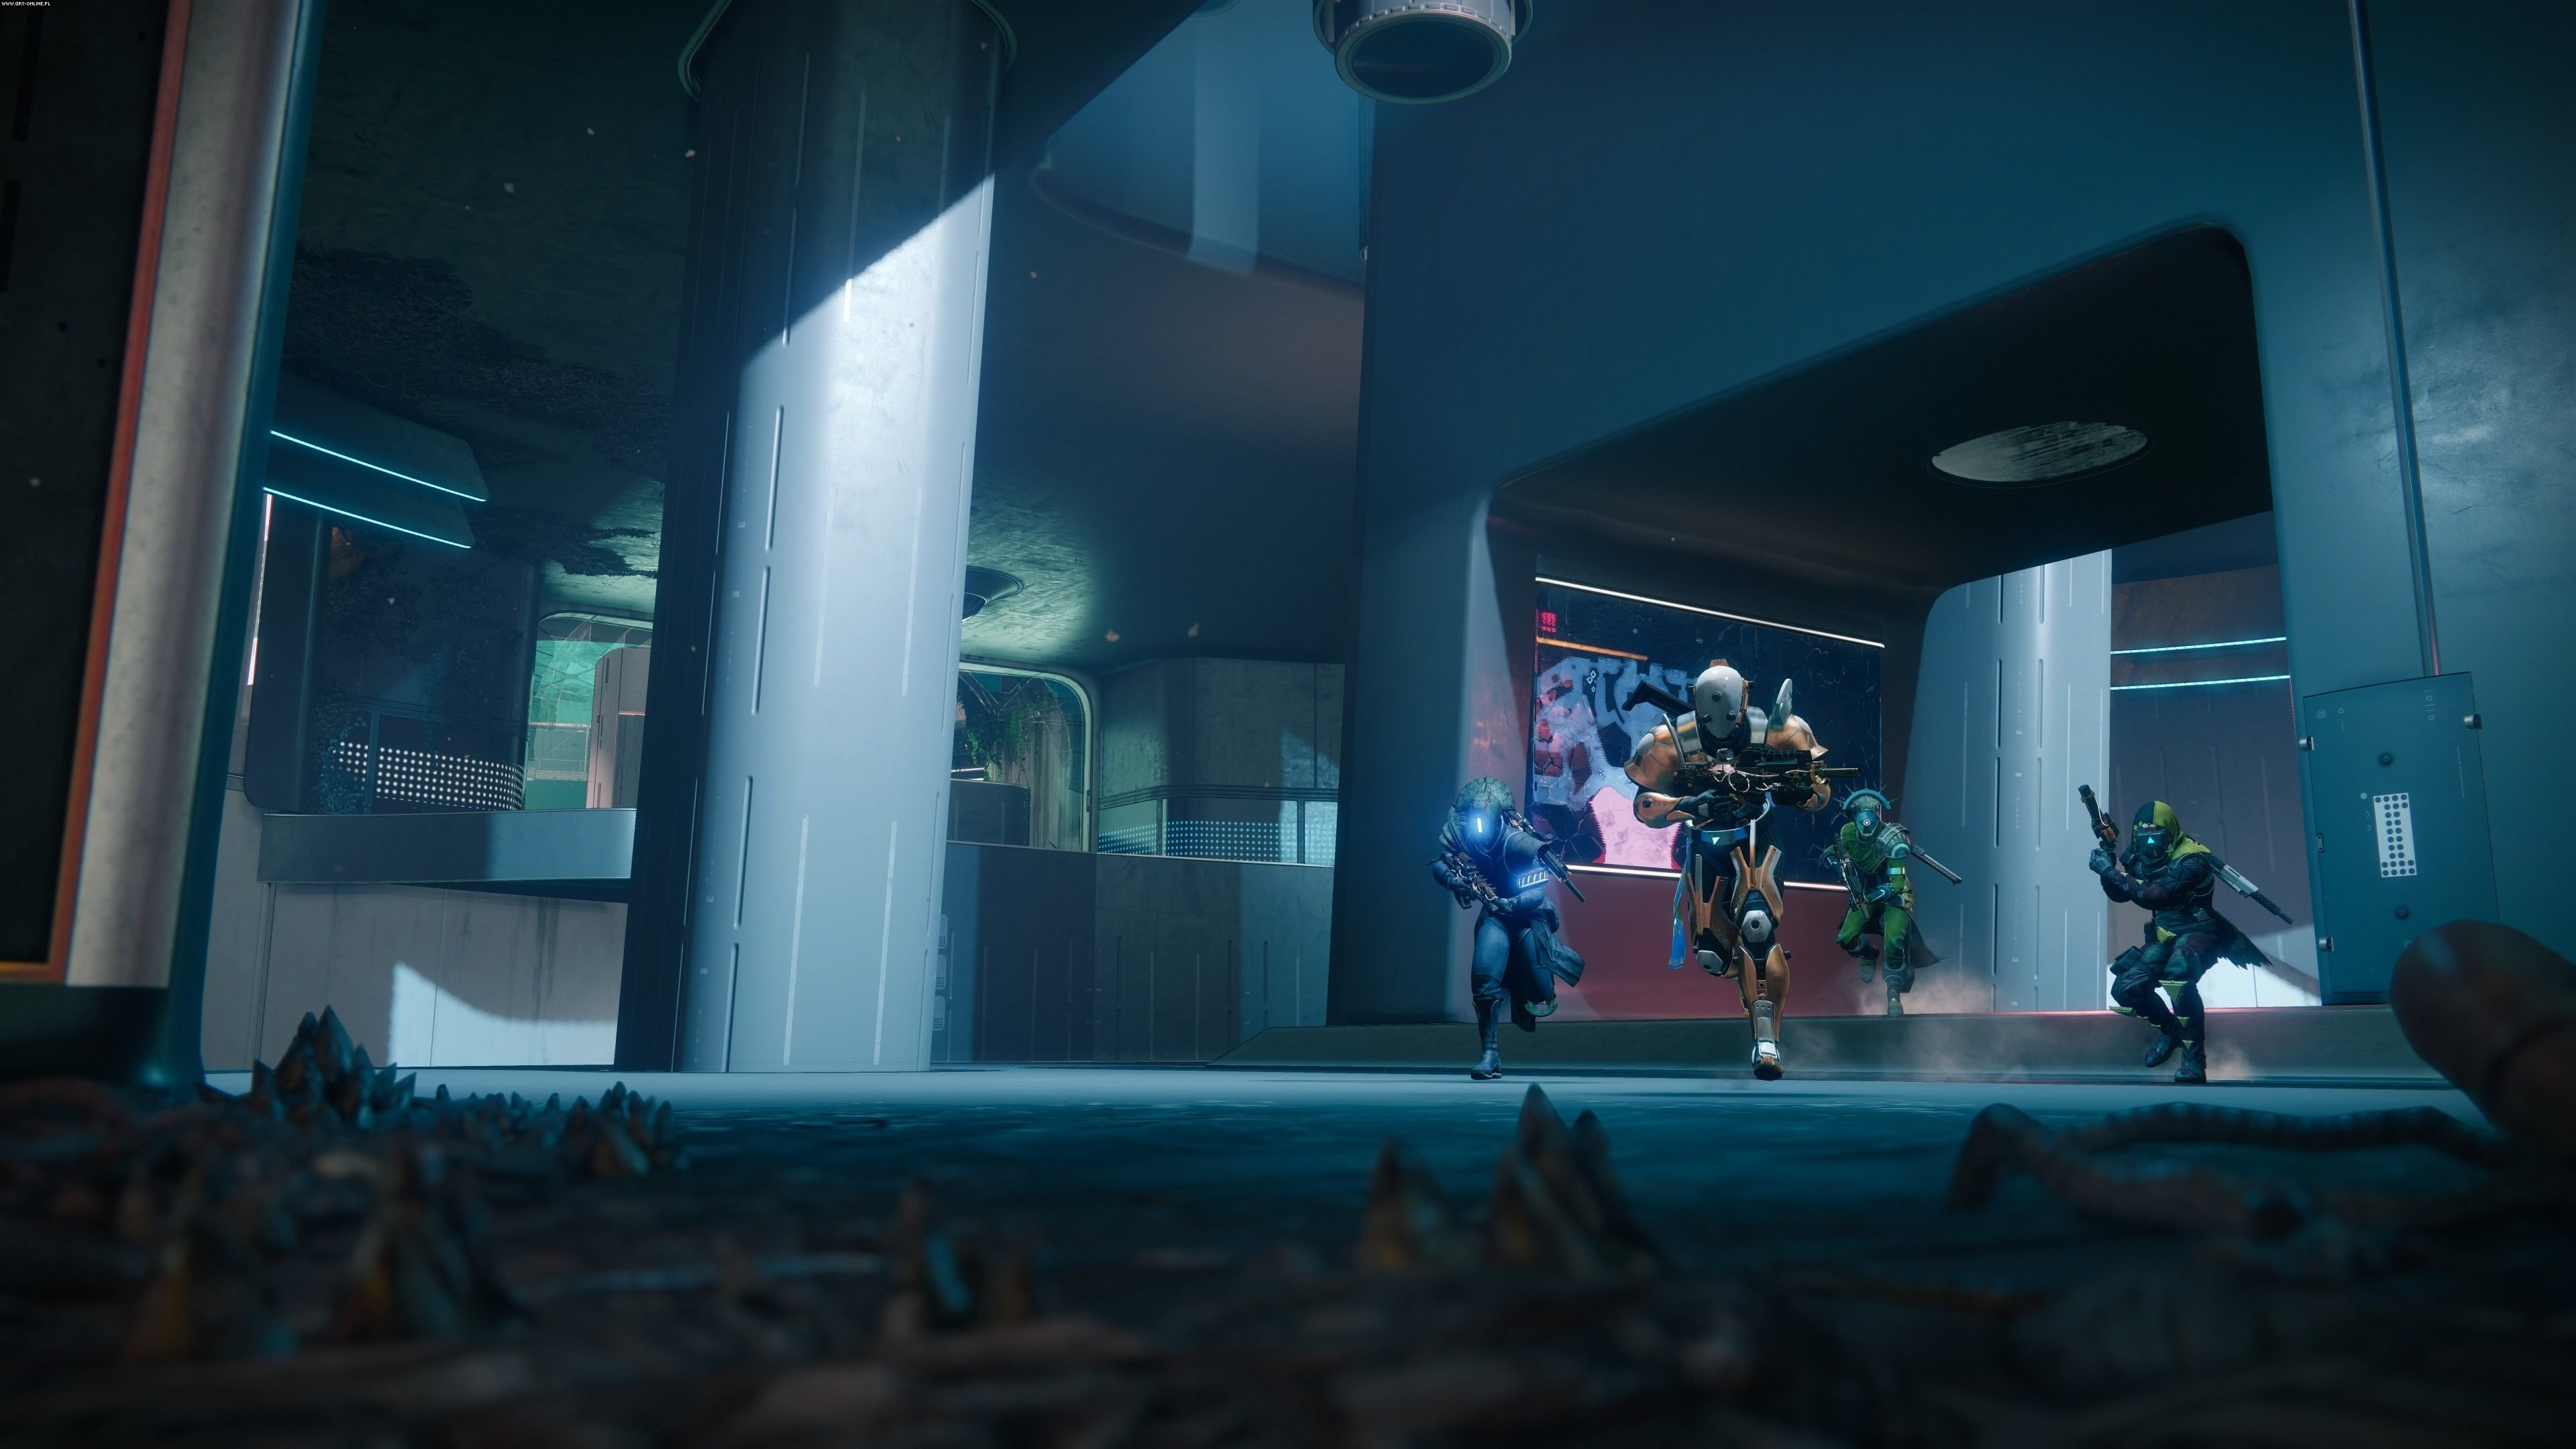 Destiny 2 PC, PS4, XONE Games Image 5/275, Bungie Software, Activision Blizzard